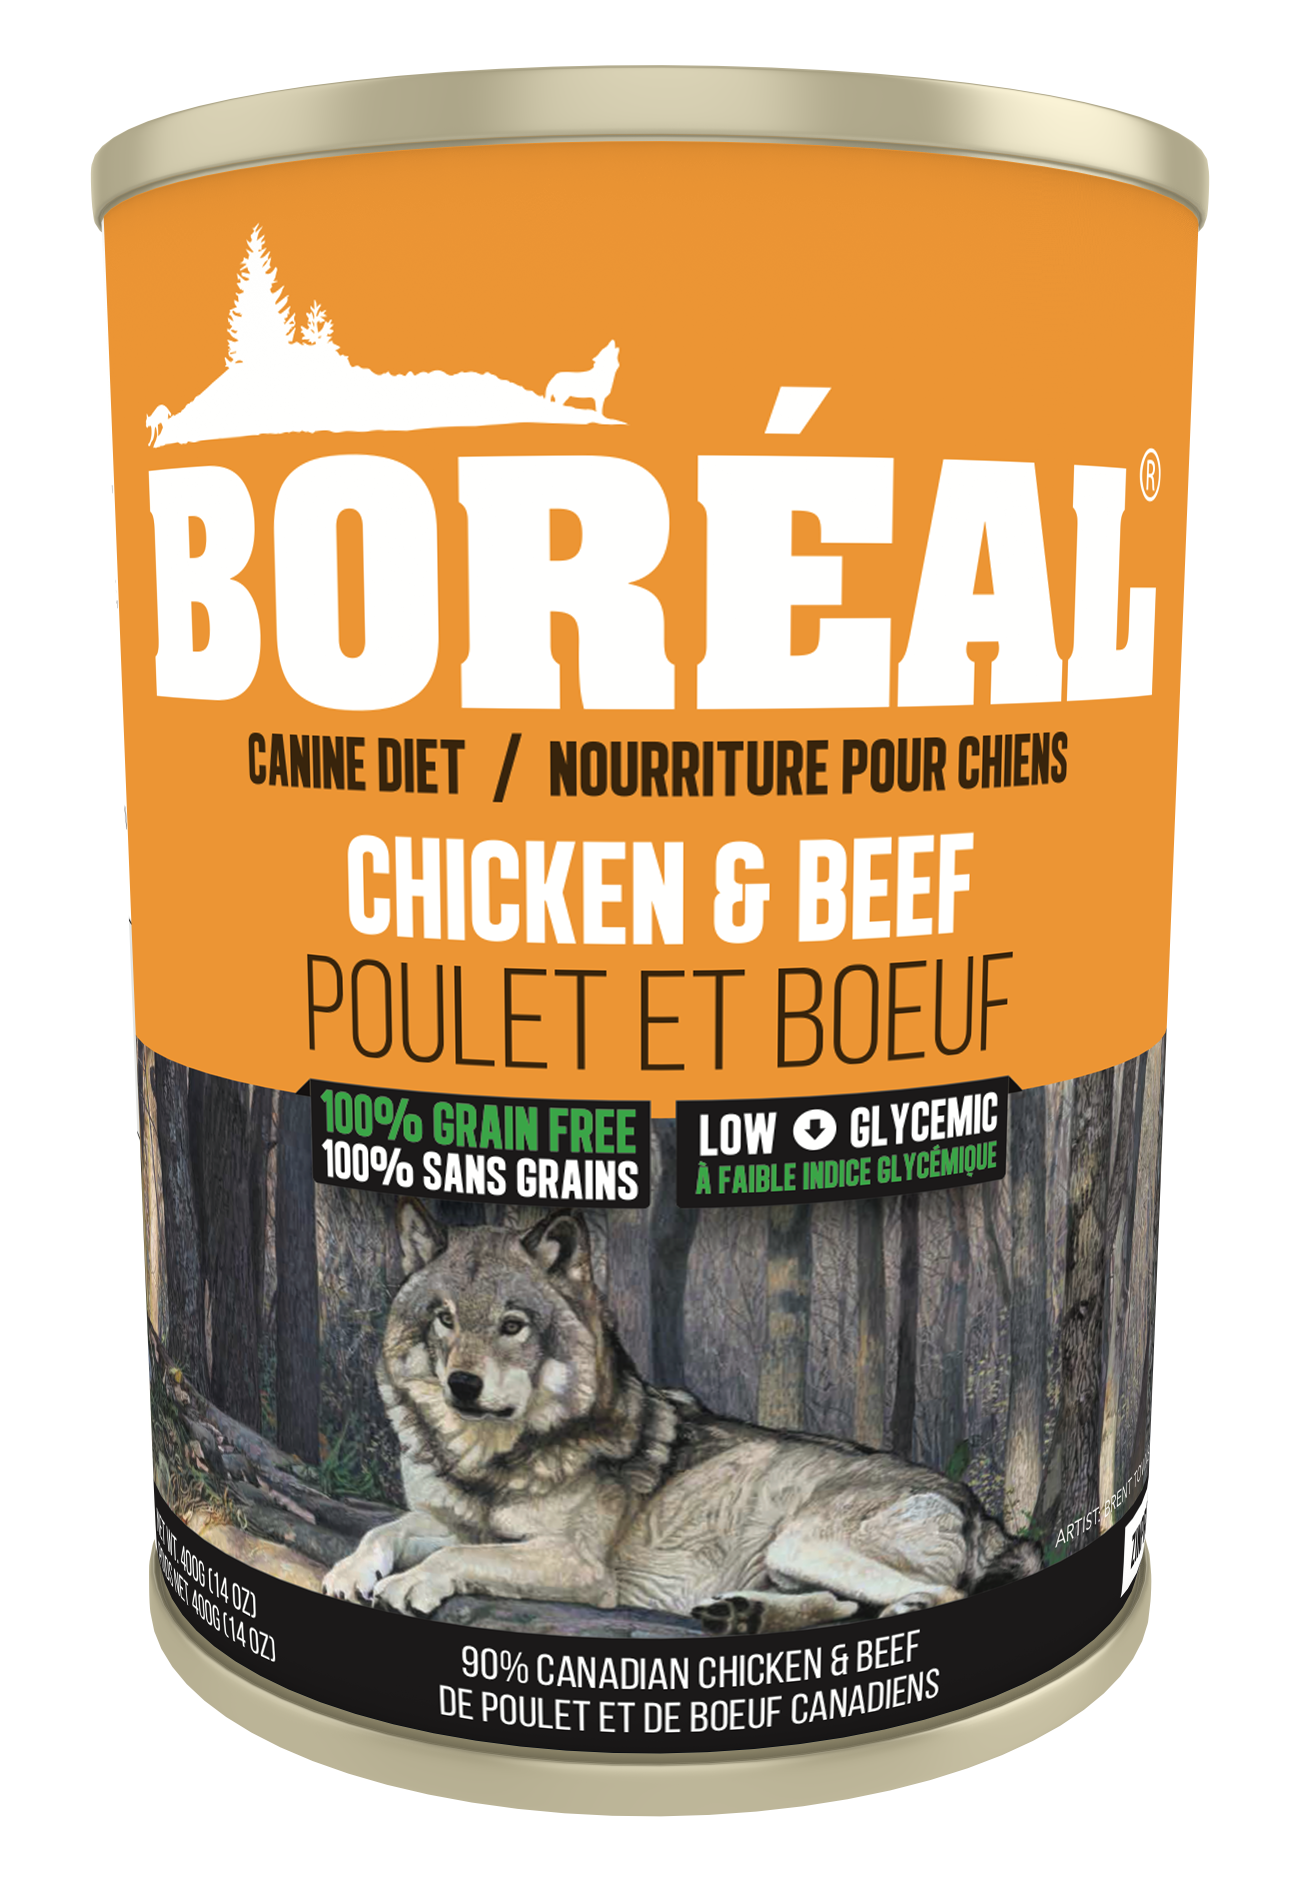 Boreal Grain-Free Big Bear Chicken & Beef Canned Dog Food, 690-gram